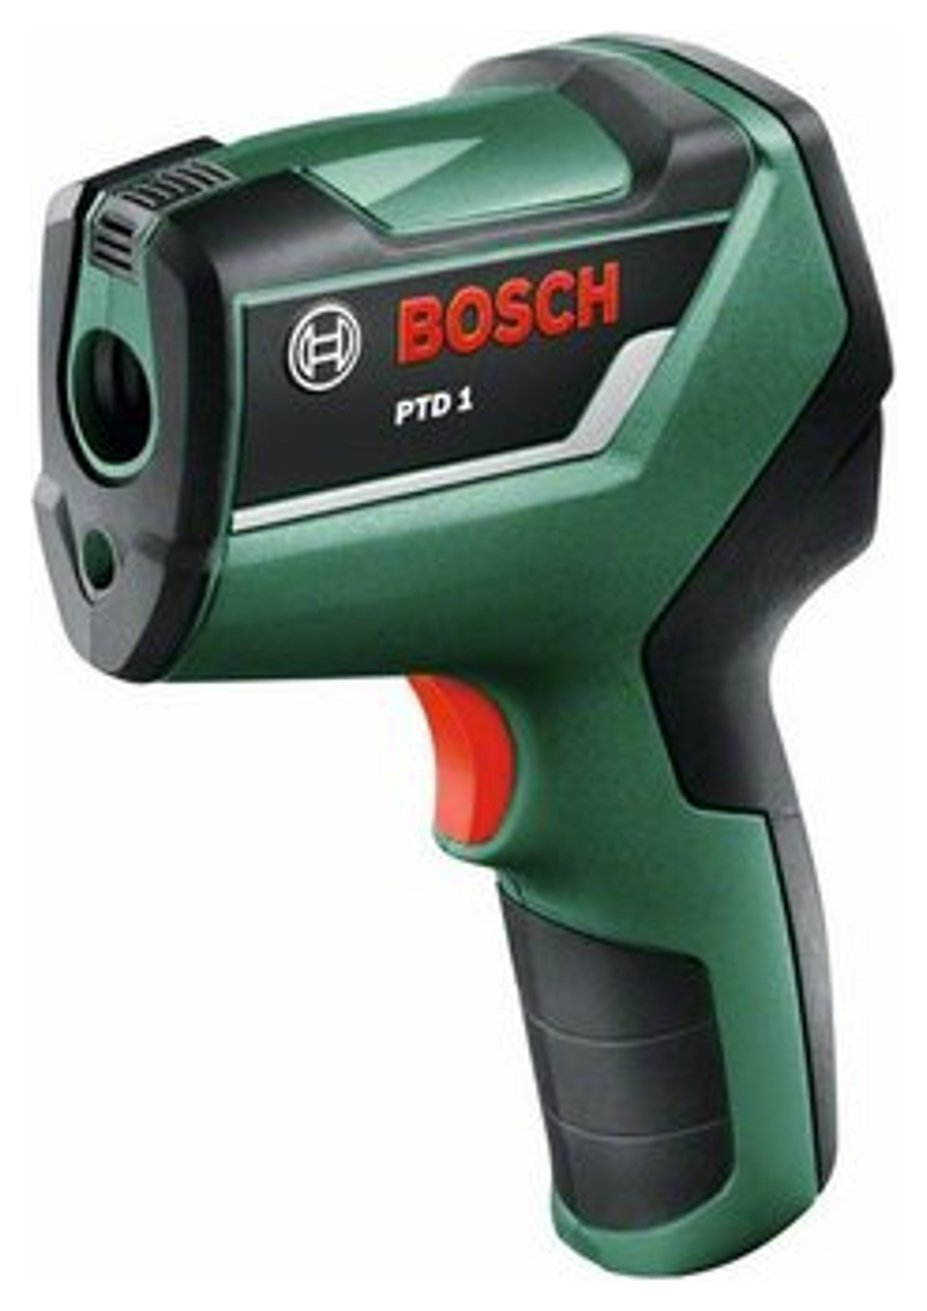 Bosch 1 Thermal Detector